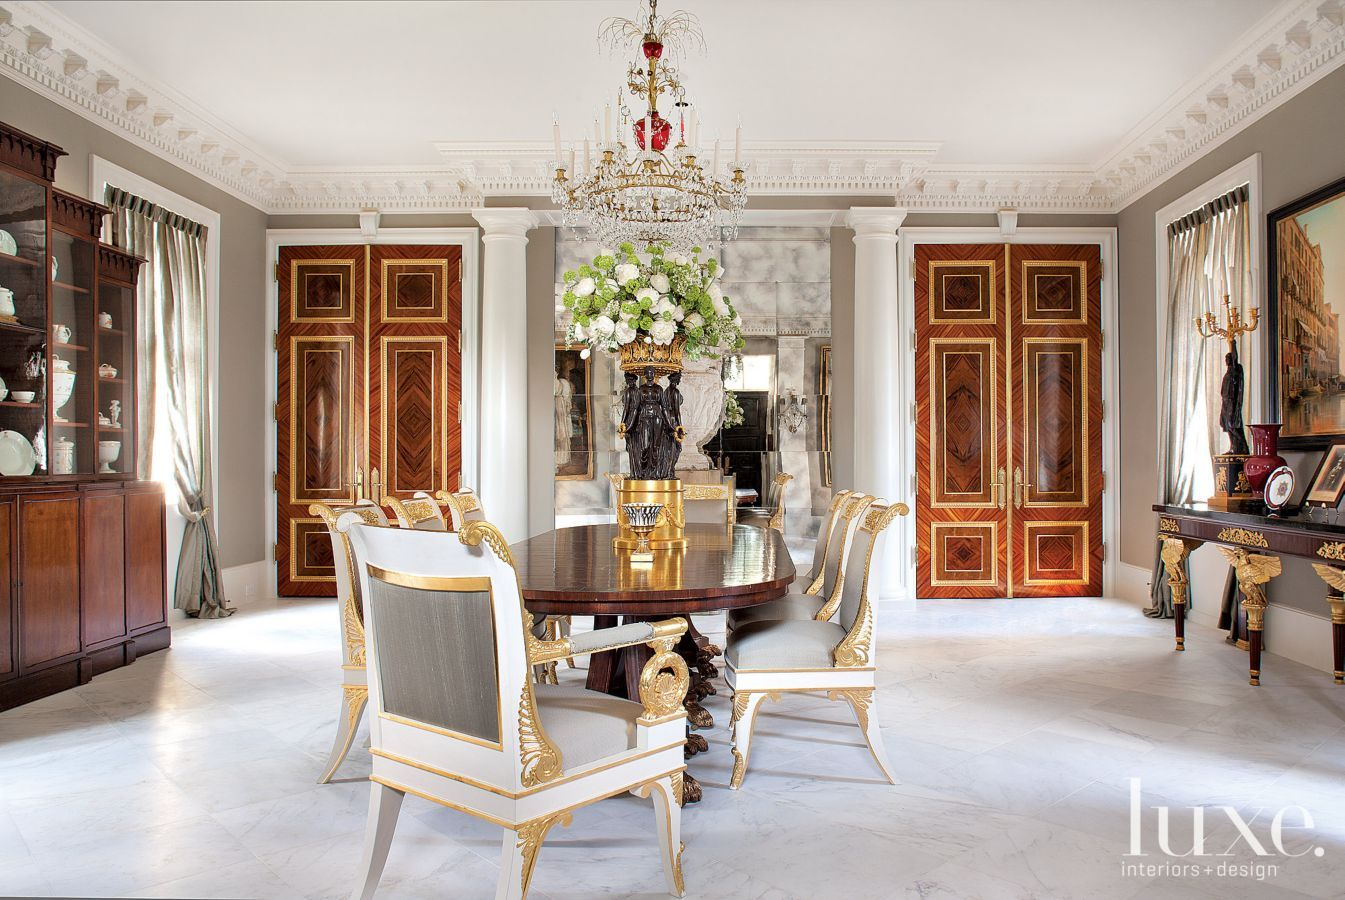 an ornate federal style houston home luxeworthy design insight from the editors of luxe